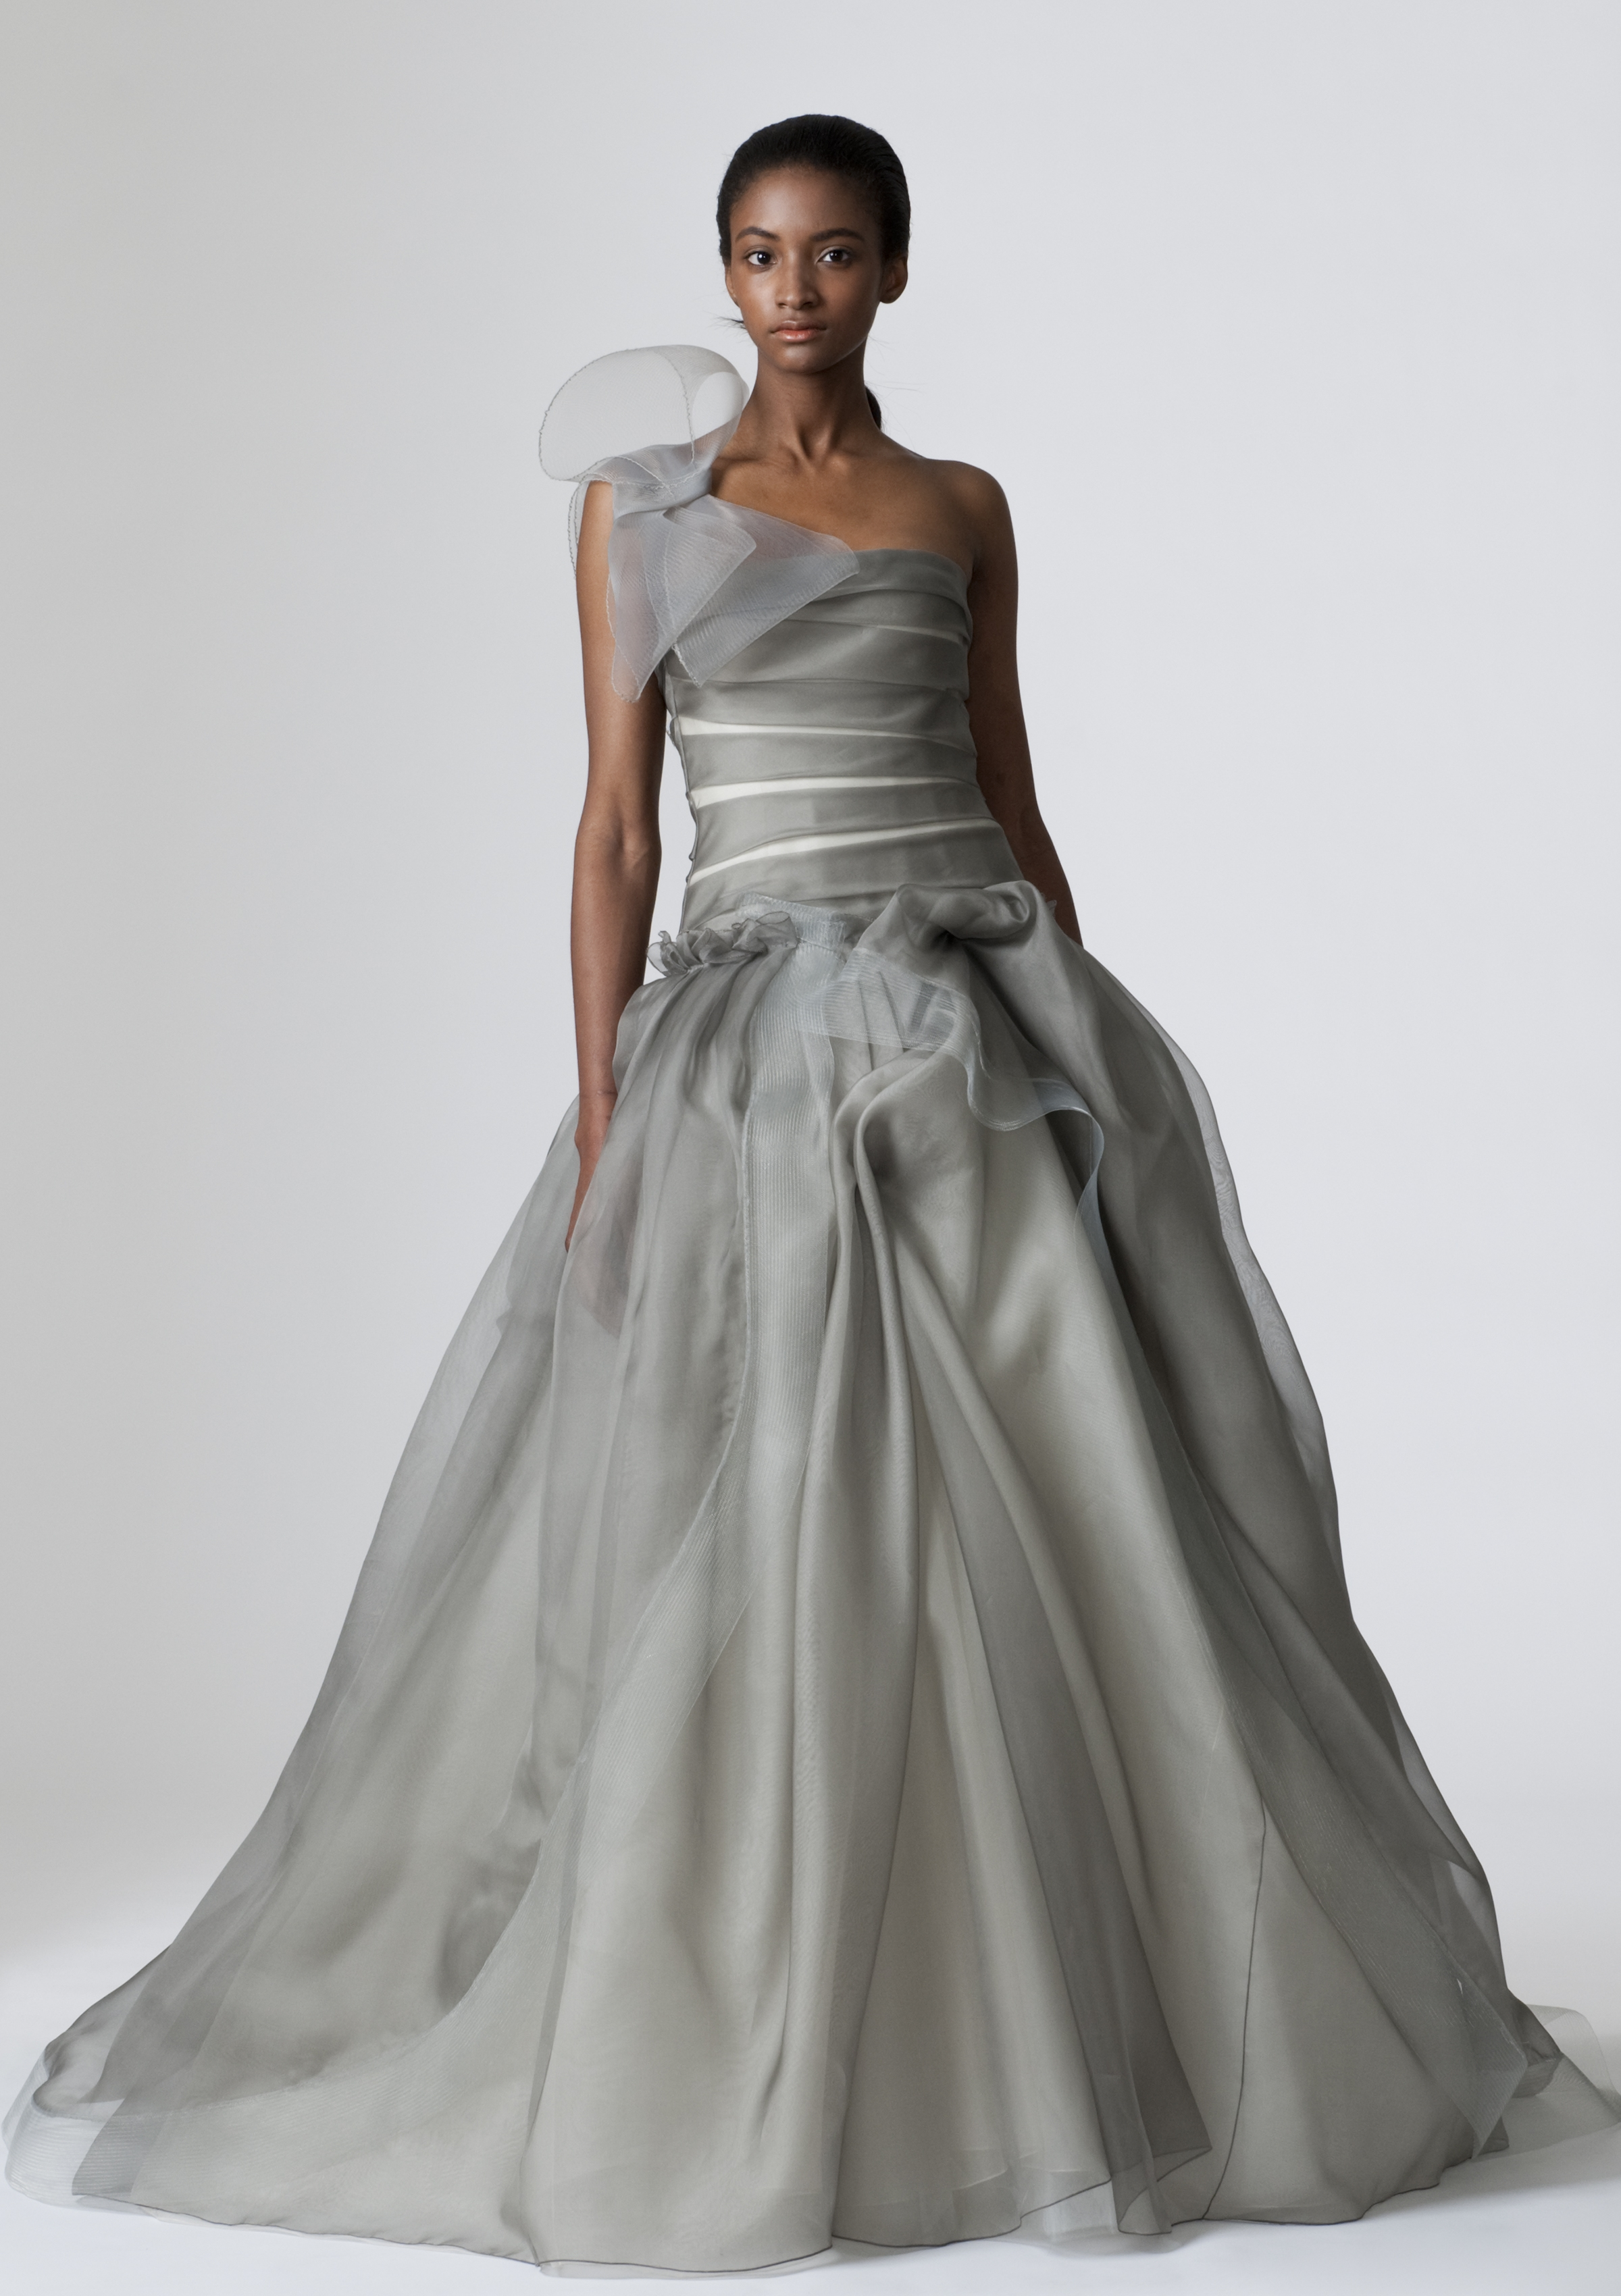 Vera-wang-wedding-dresses-spring-2010-10.original